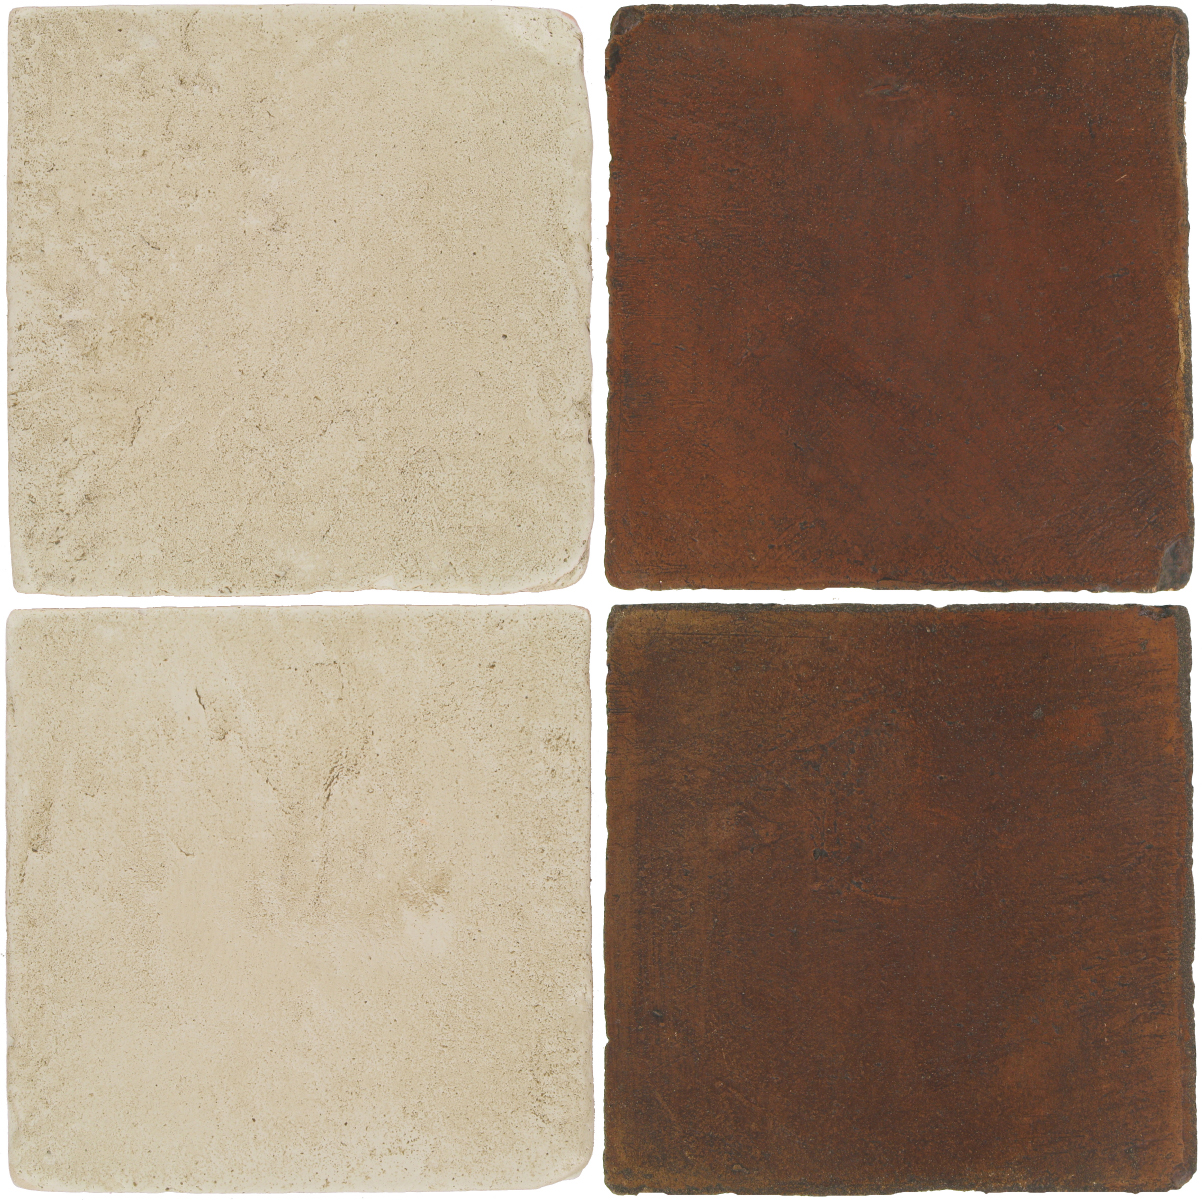 Pedralbes Antique Terracotta  2 Color Combinations  VTG-PGLW Glacier White + OHS-PSOW Old World